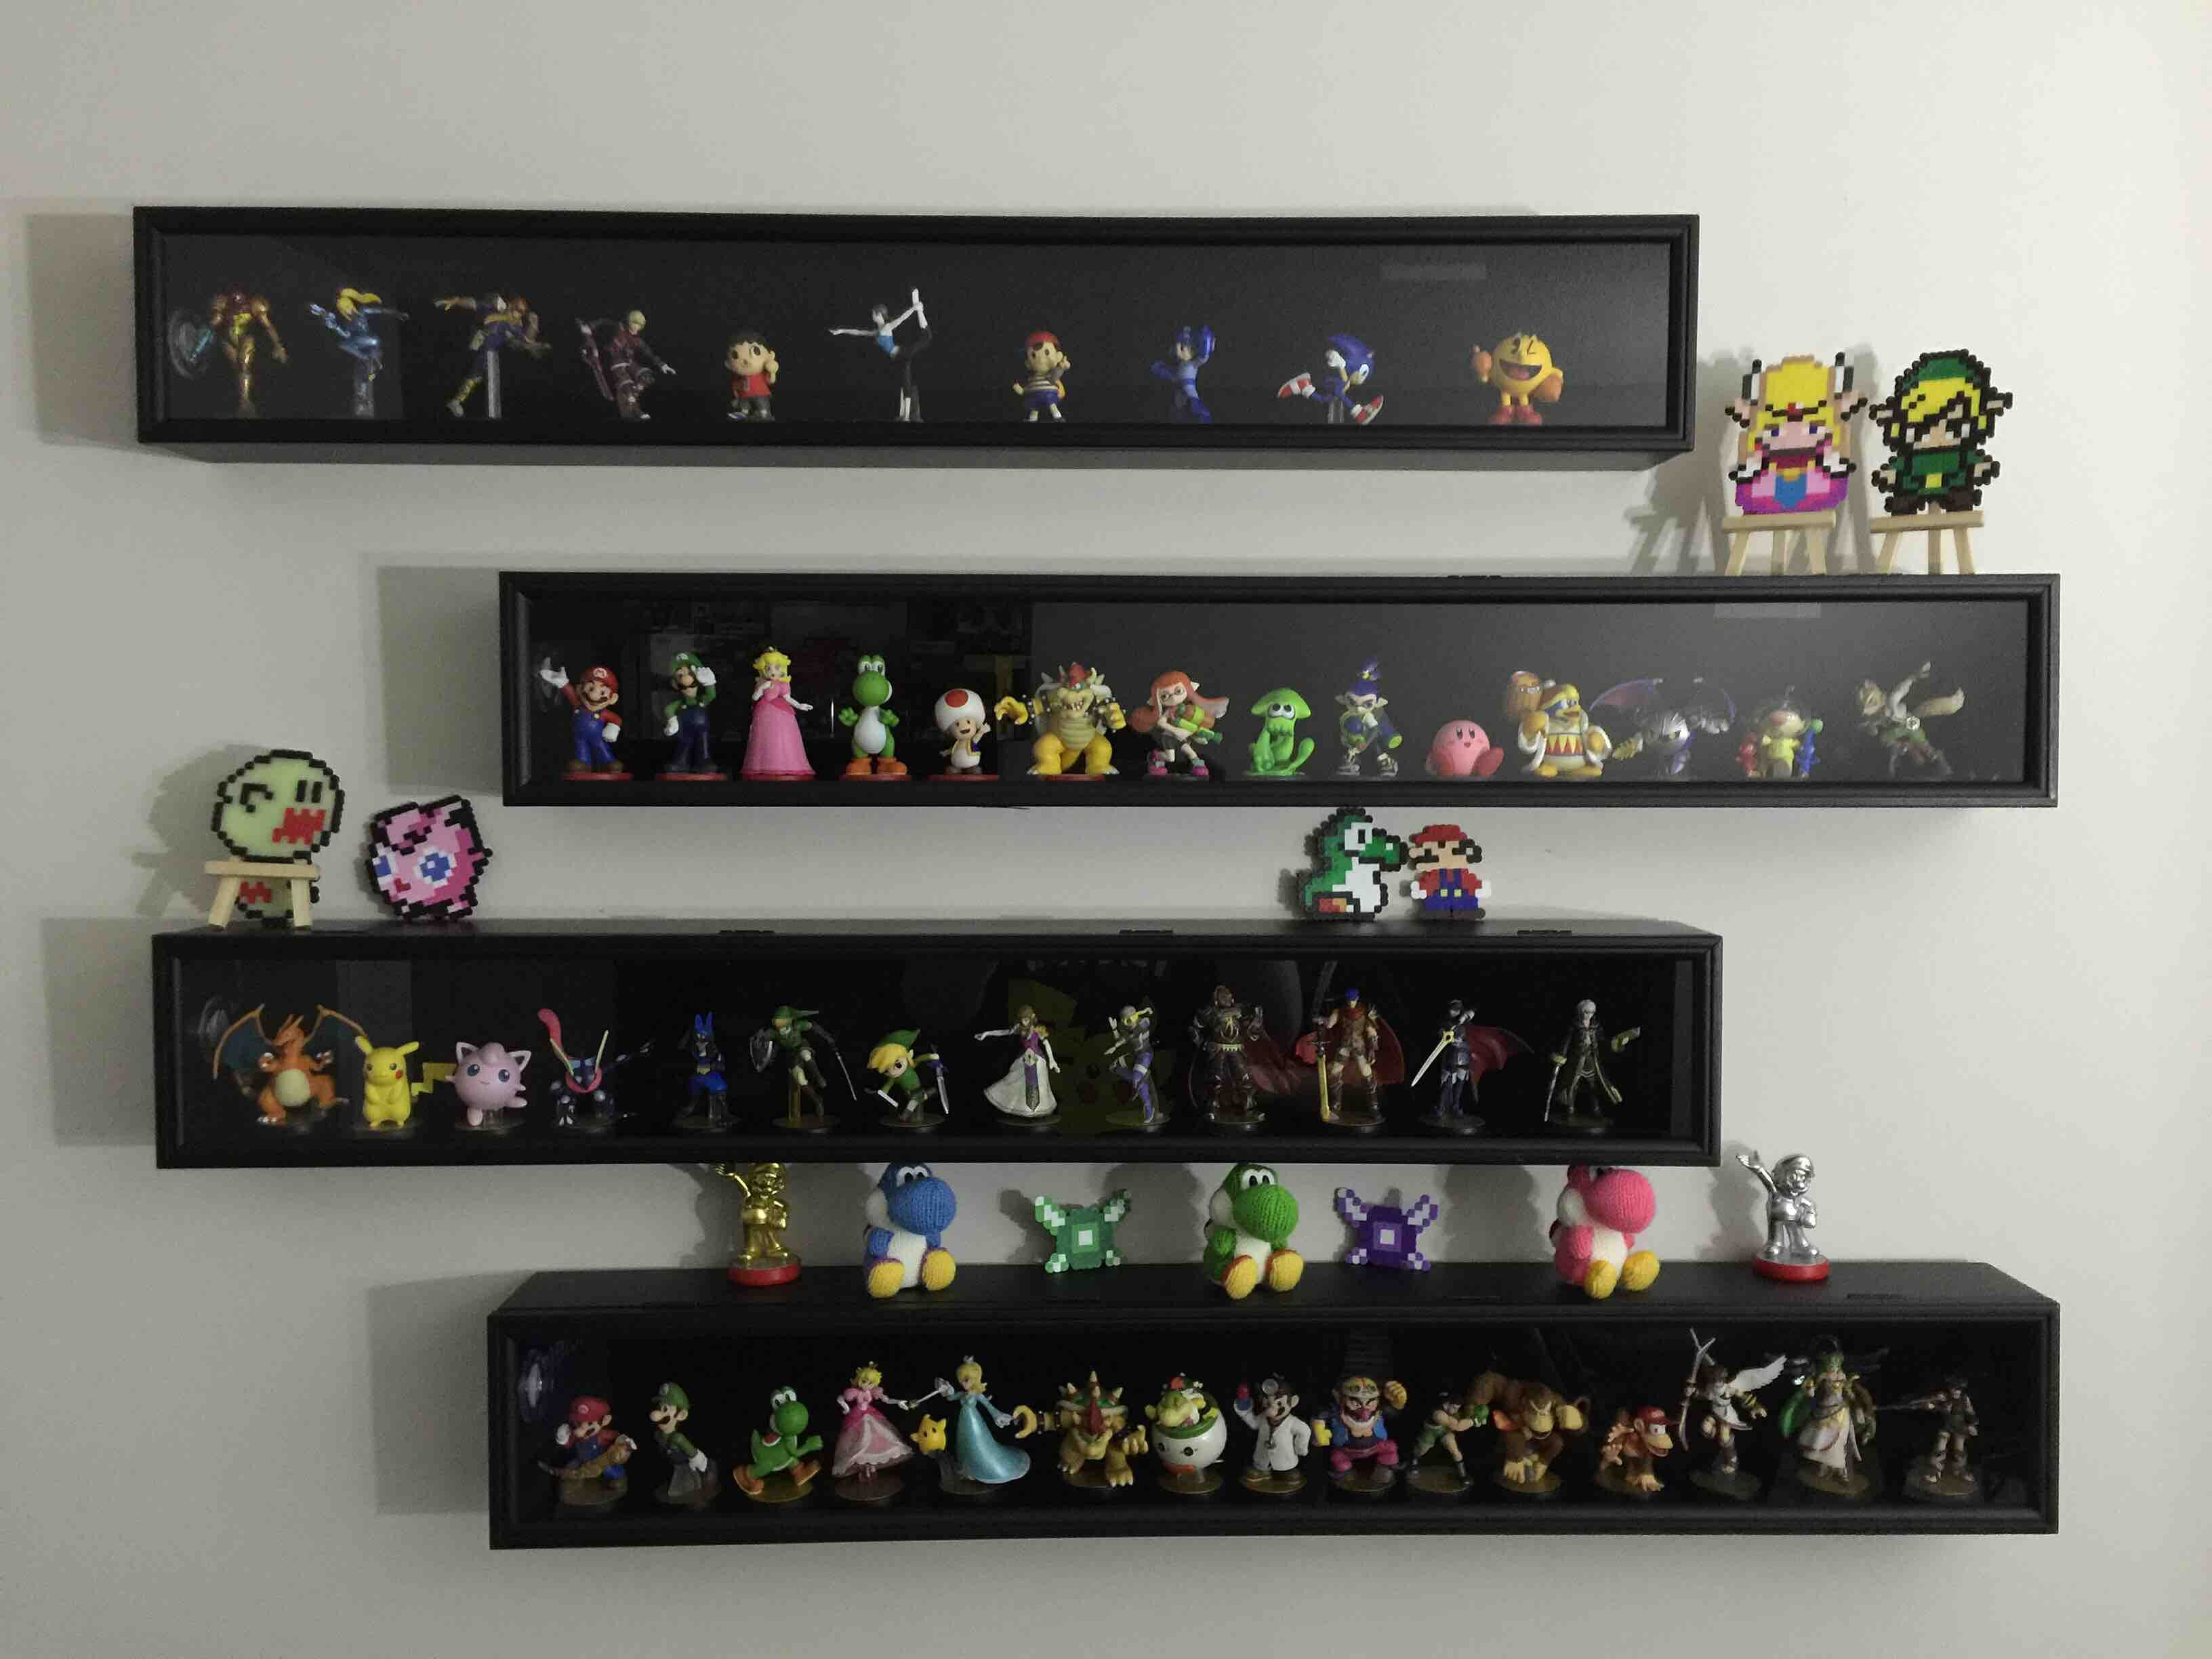 les 25 meilleures id es de la cat gorie amiibo display sur pinterest vitrine lego talage. Black Bedroom Furniture Sets. Home Design Ideas